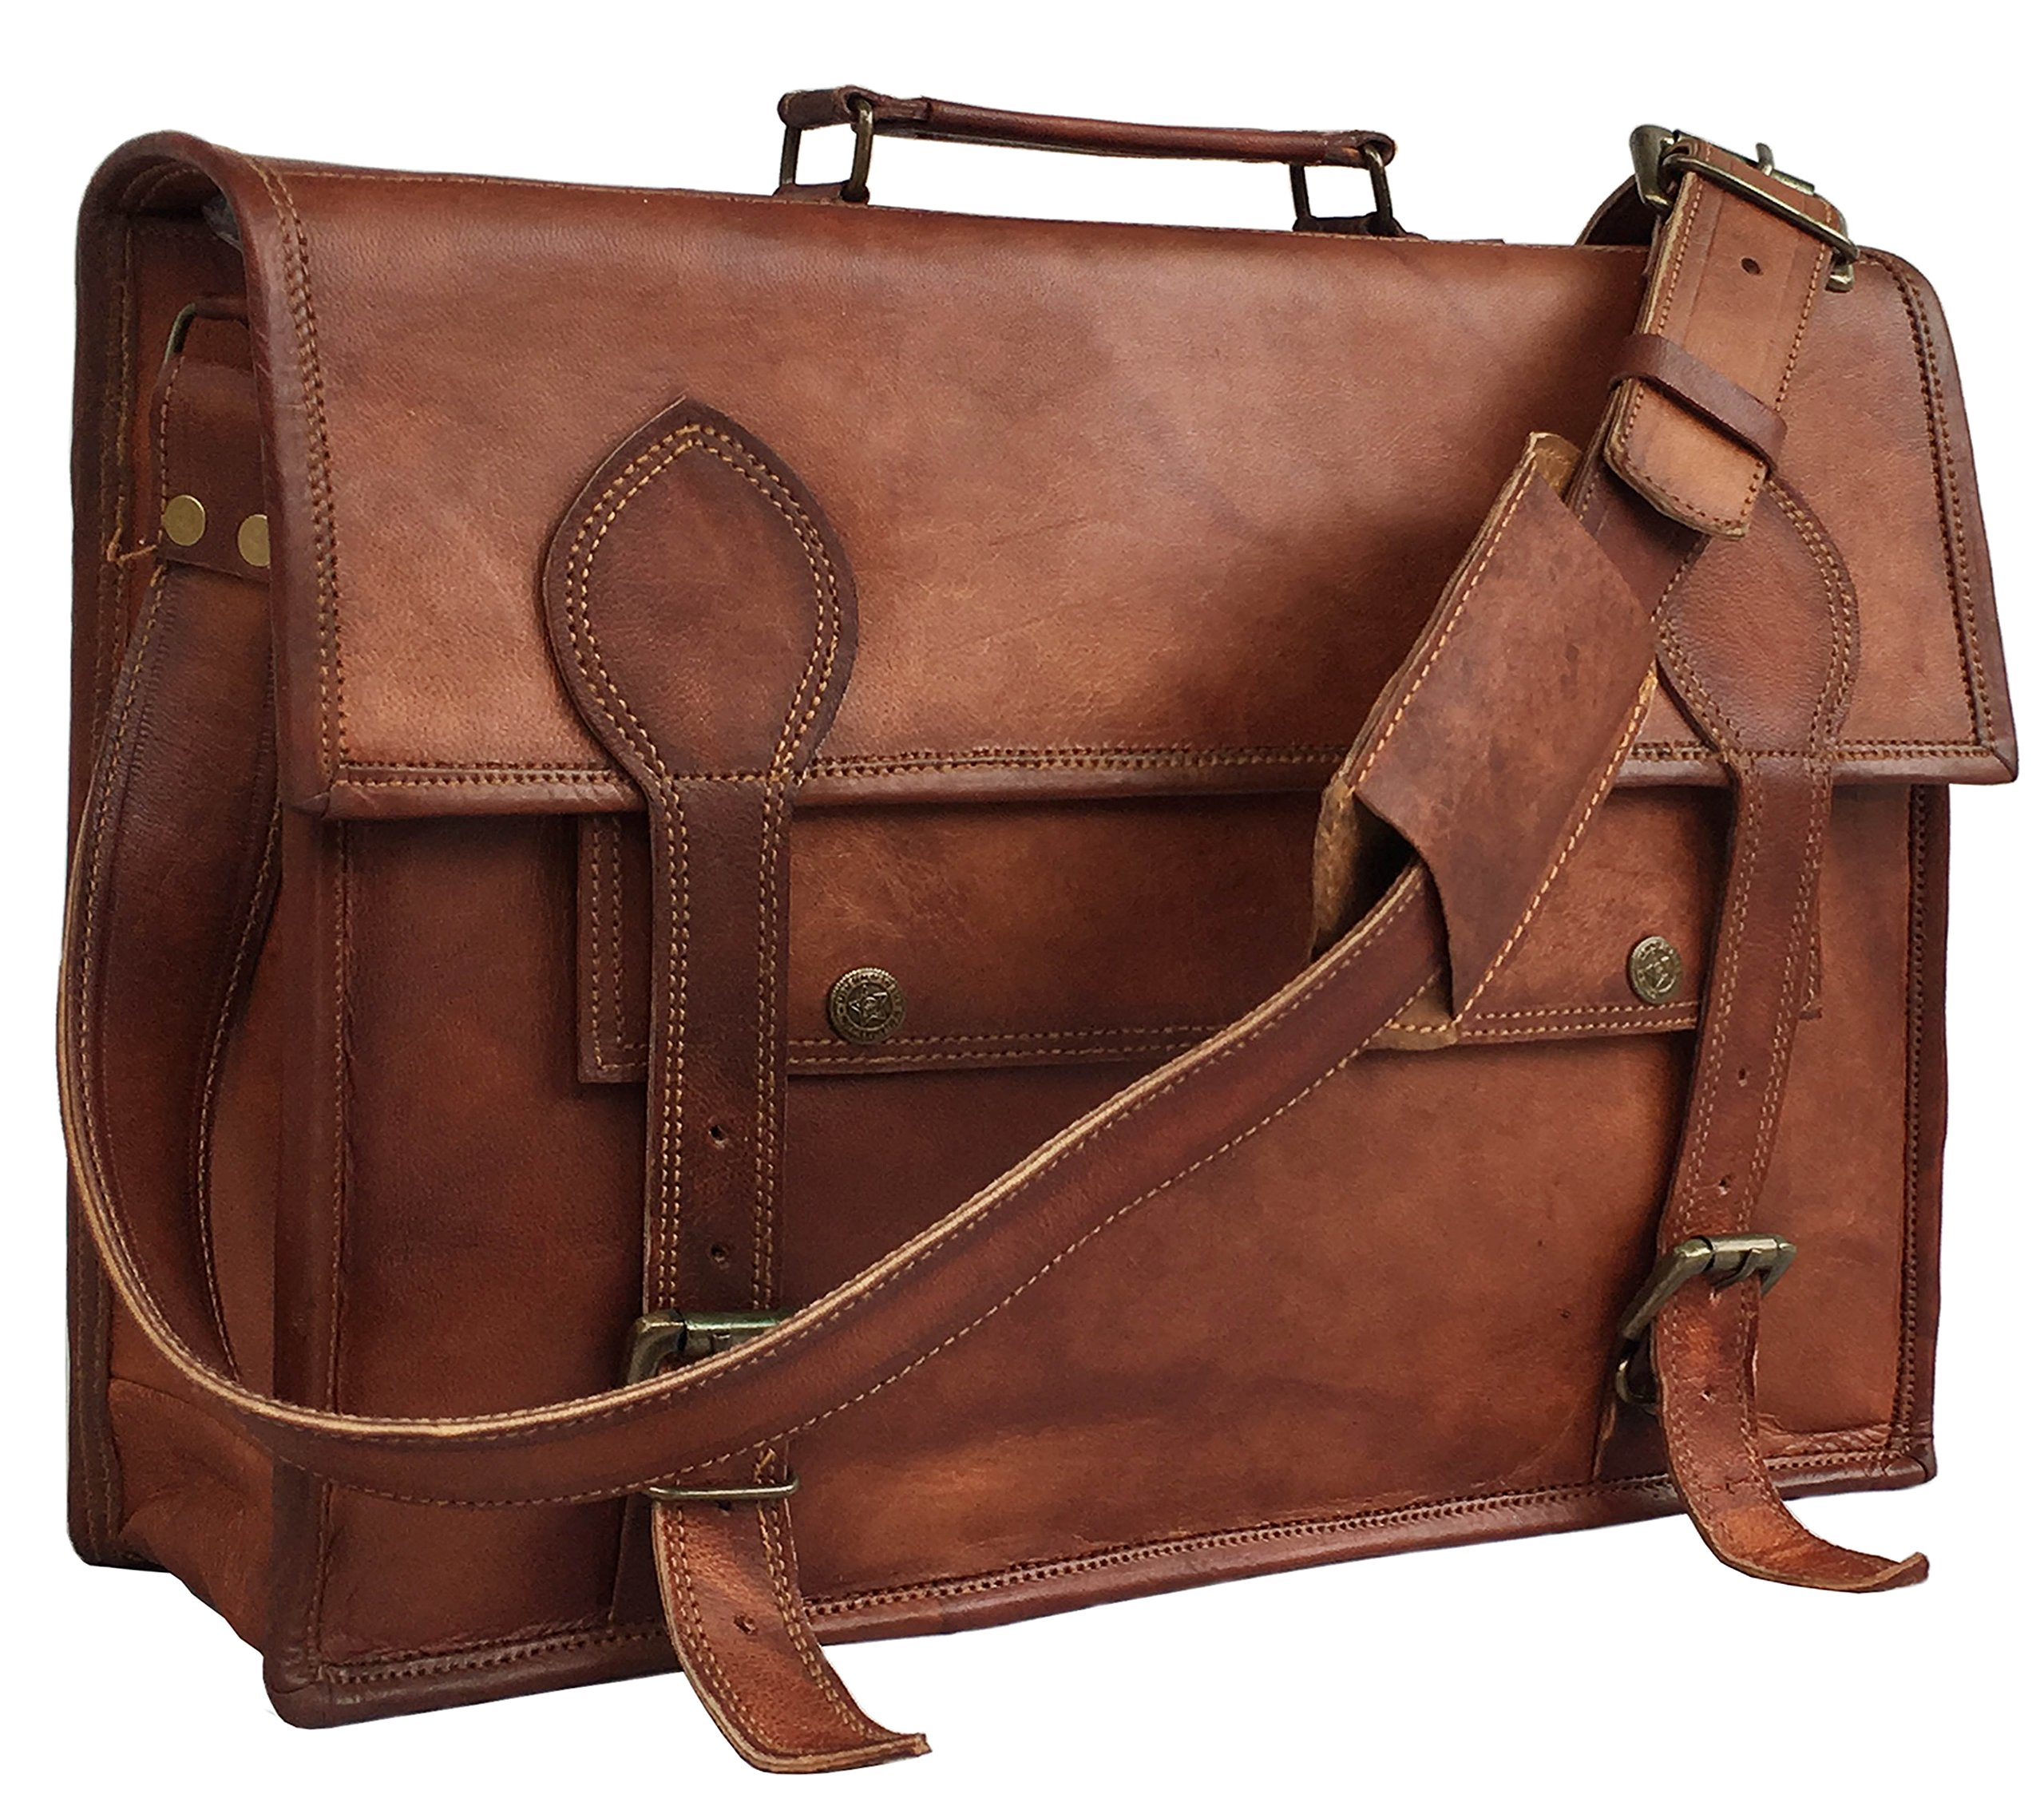 Galleon - 16 Inch Vintage Handmade Leather Messenger Bag For Laptop  Briefcase Best Computer Satchel School Distressed Bag ff5189e06ce8b